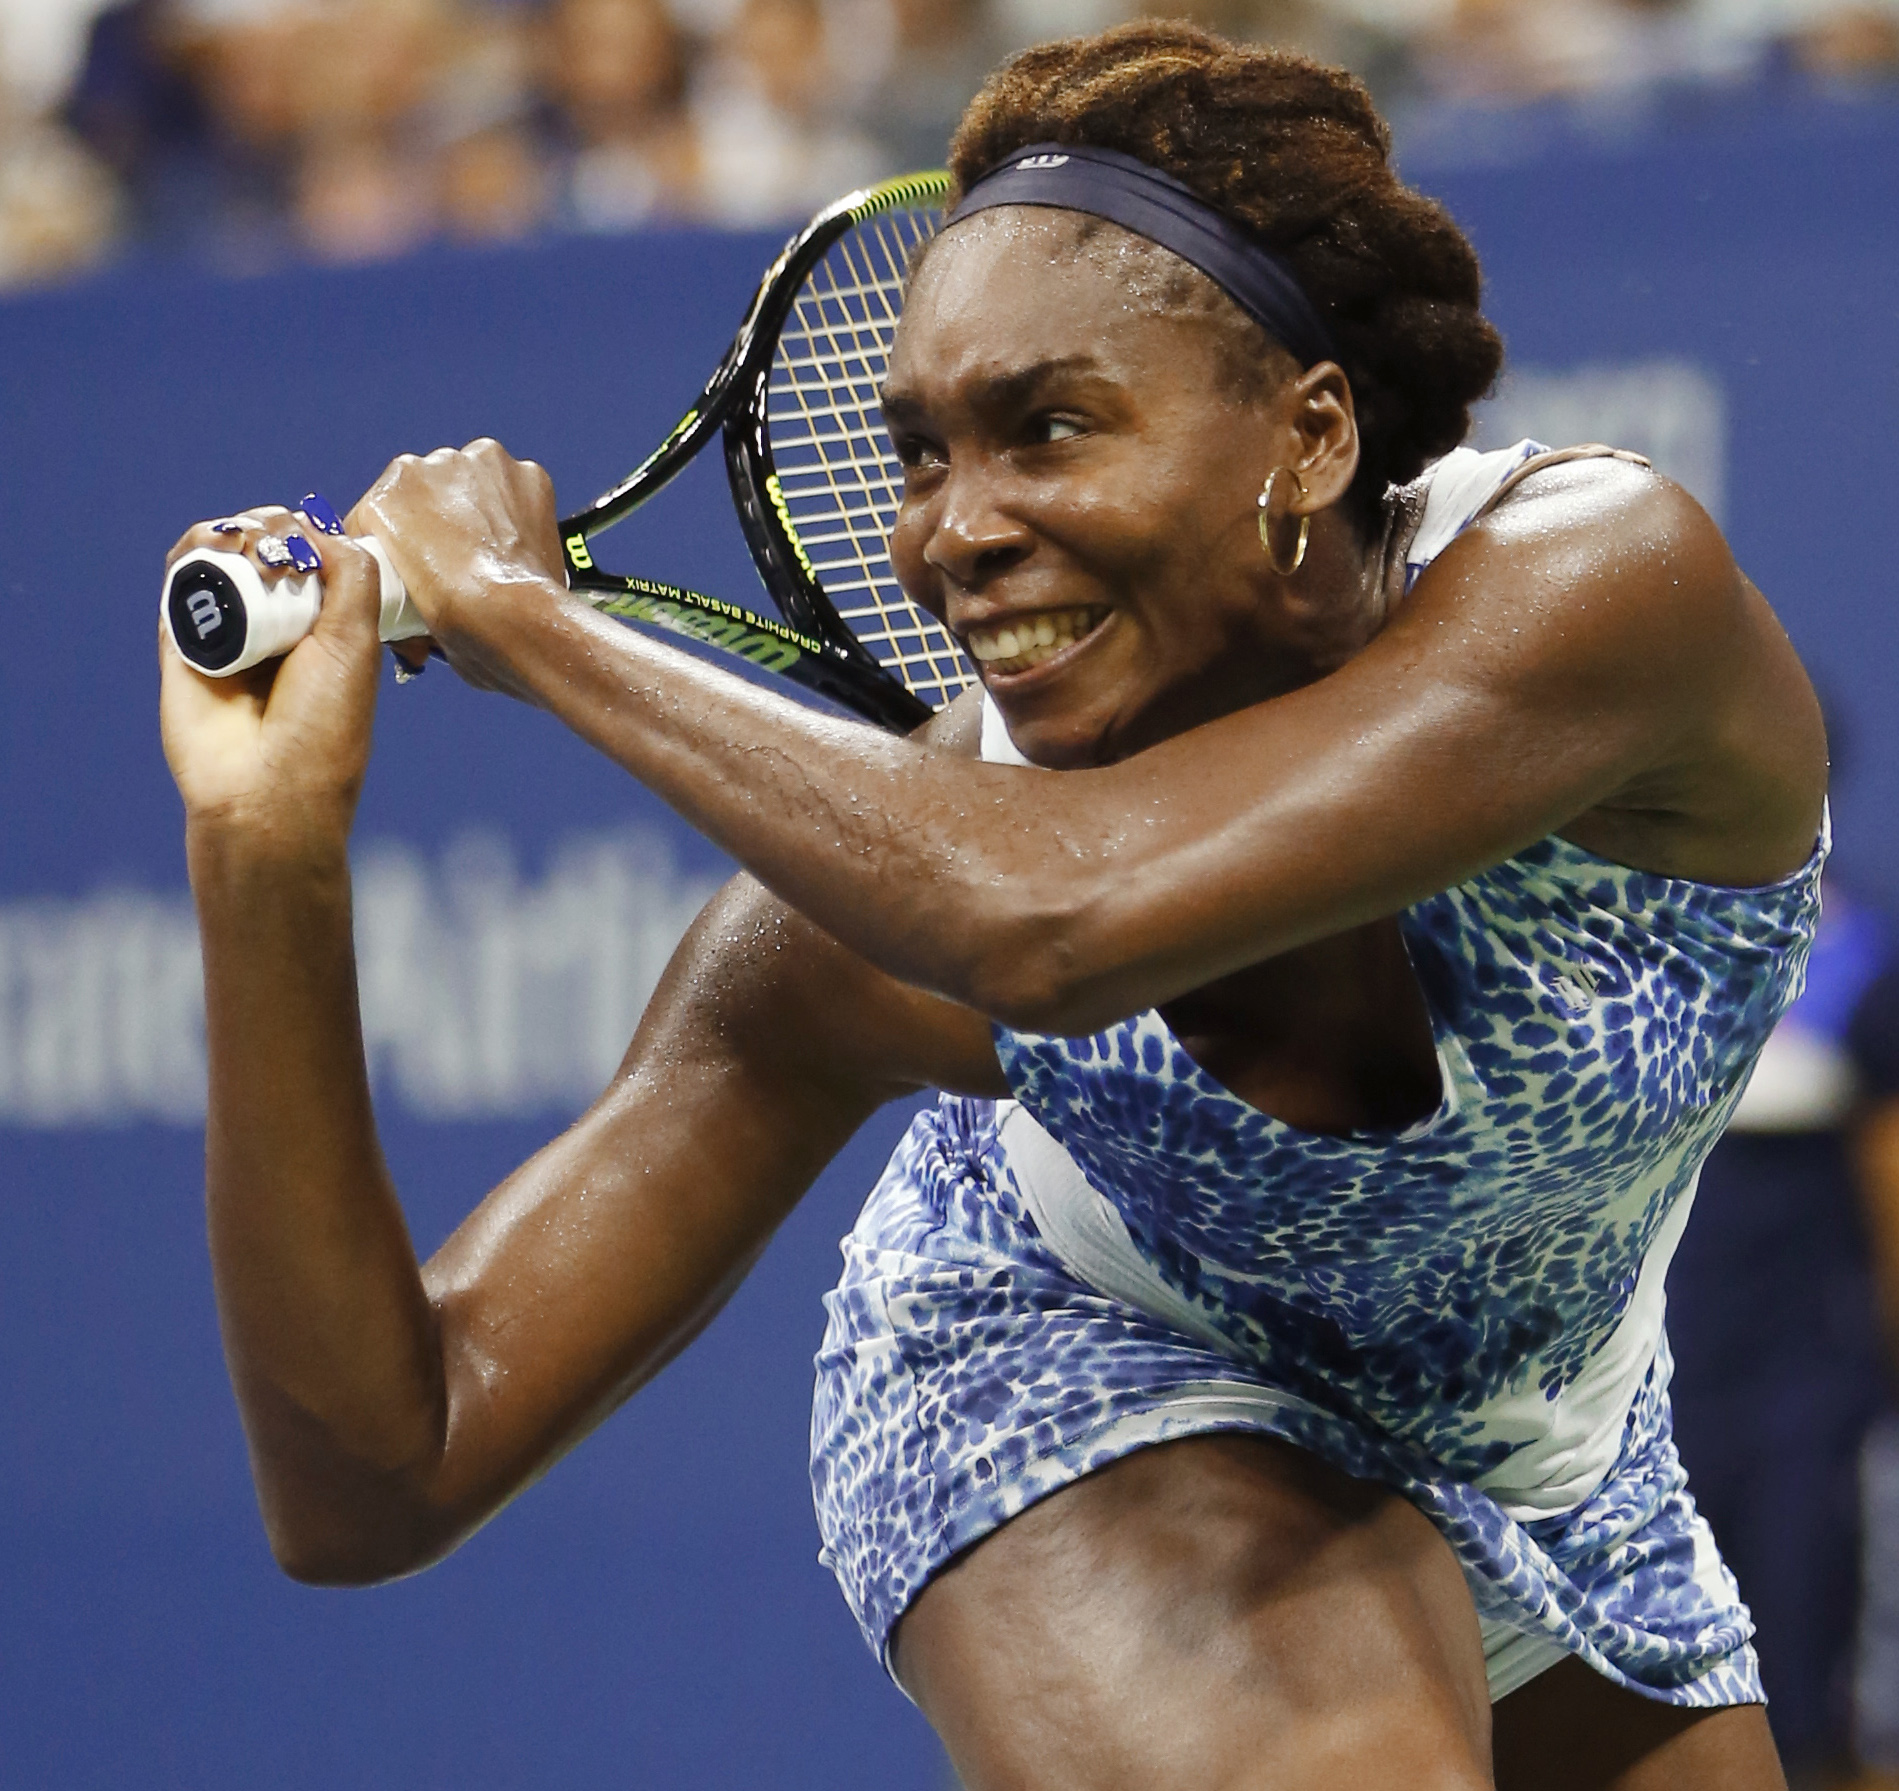 Venus Williams, of the United States, watches a return to Irina Falconi, of the United States, at the U.S. Open tennis tournamen in New York, Wednesday, Sept. 2, 2015.  (AP Photo/Kathy Willens)